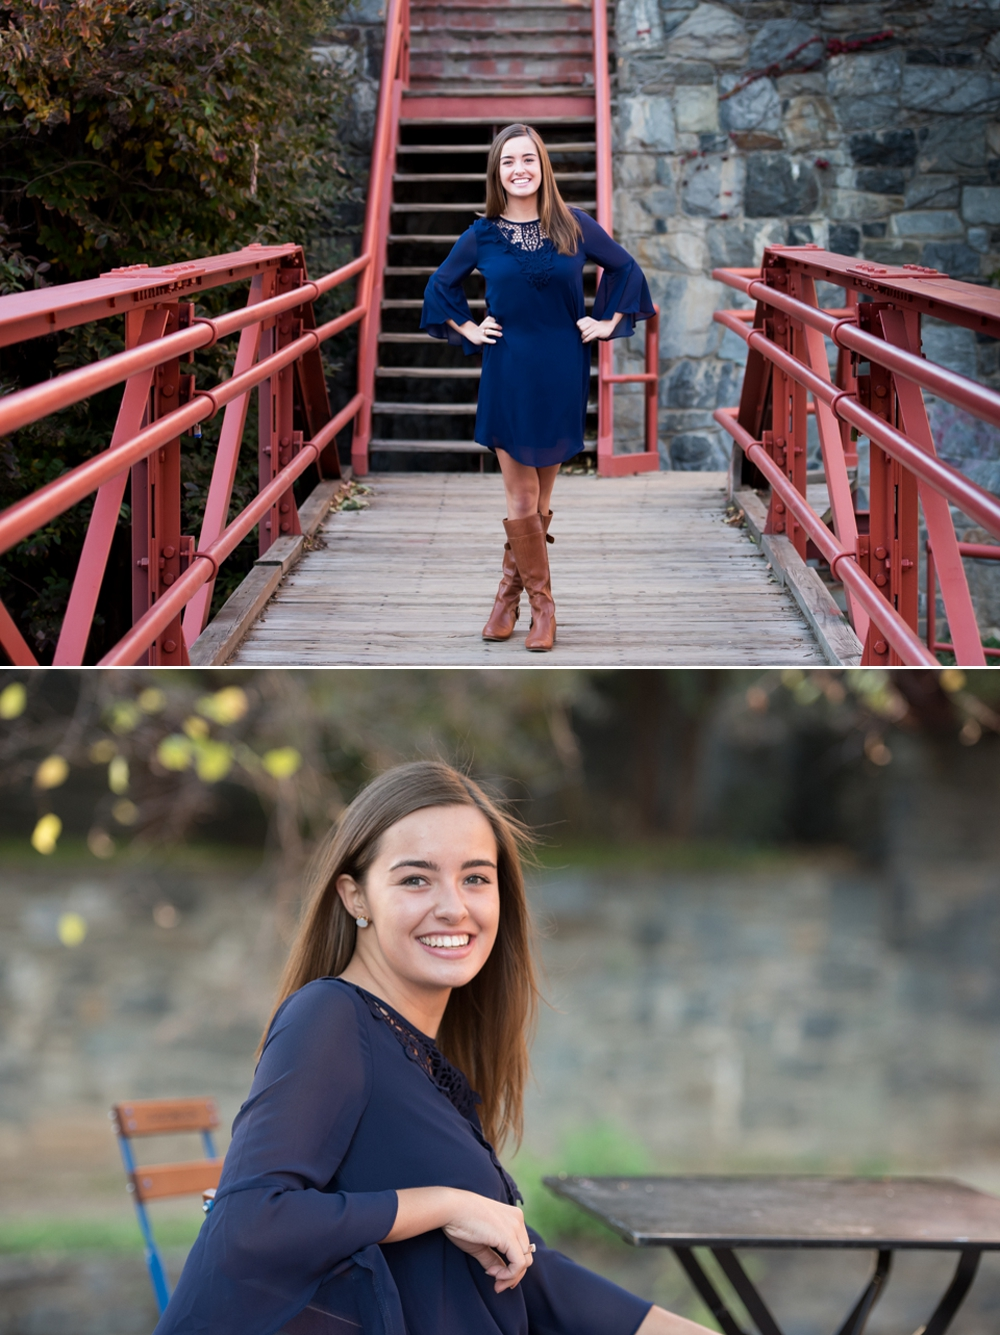 senior photographer vienna va    georgetown photographer  northern virginia senior photographer  senior portraits vienna va  senior portraits northern virginia